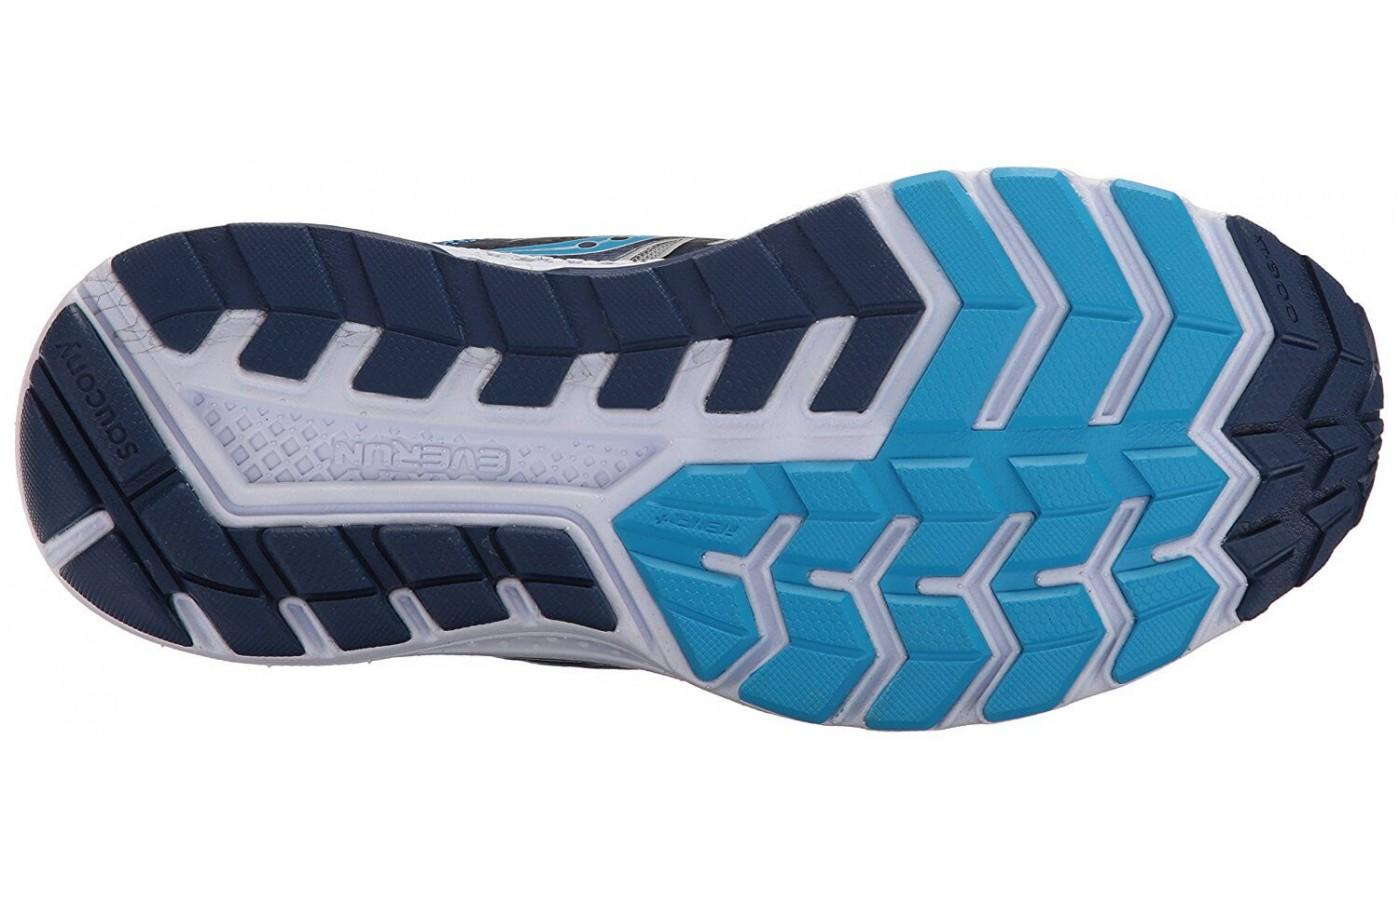 The TRI-FLEX outsole adds traction and flexibility